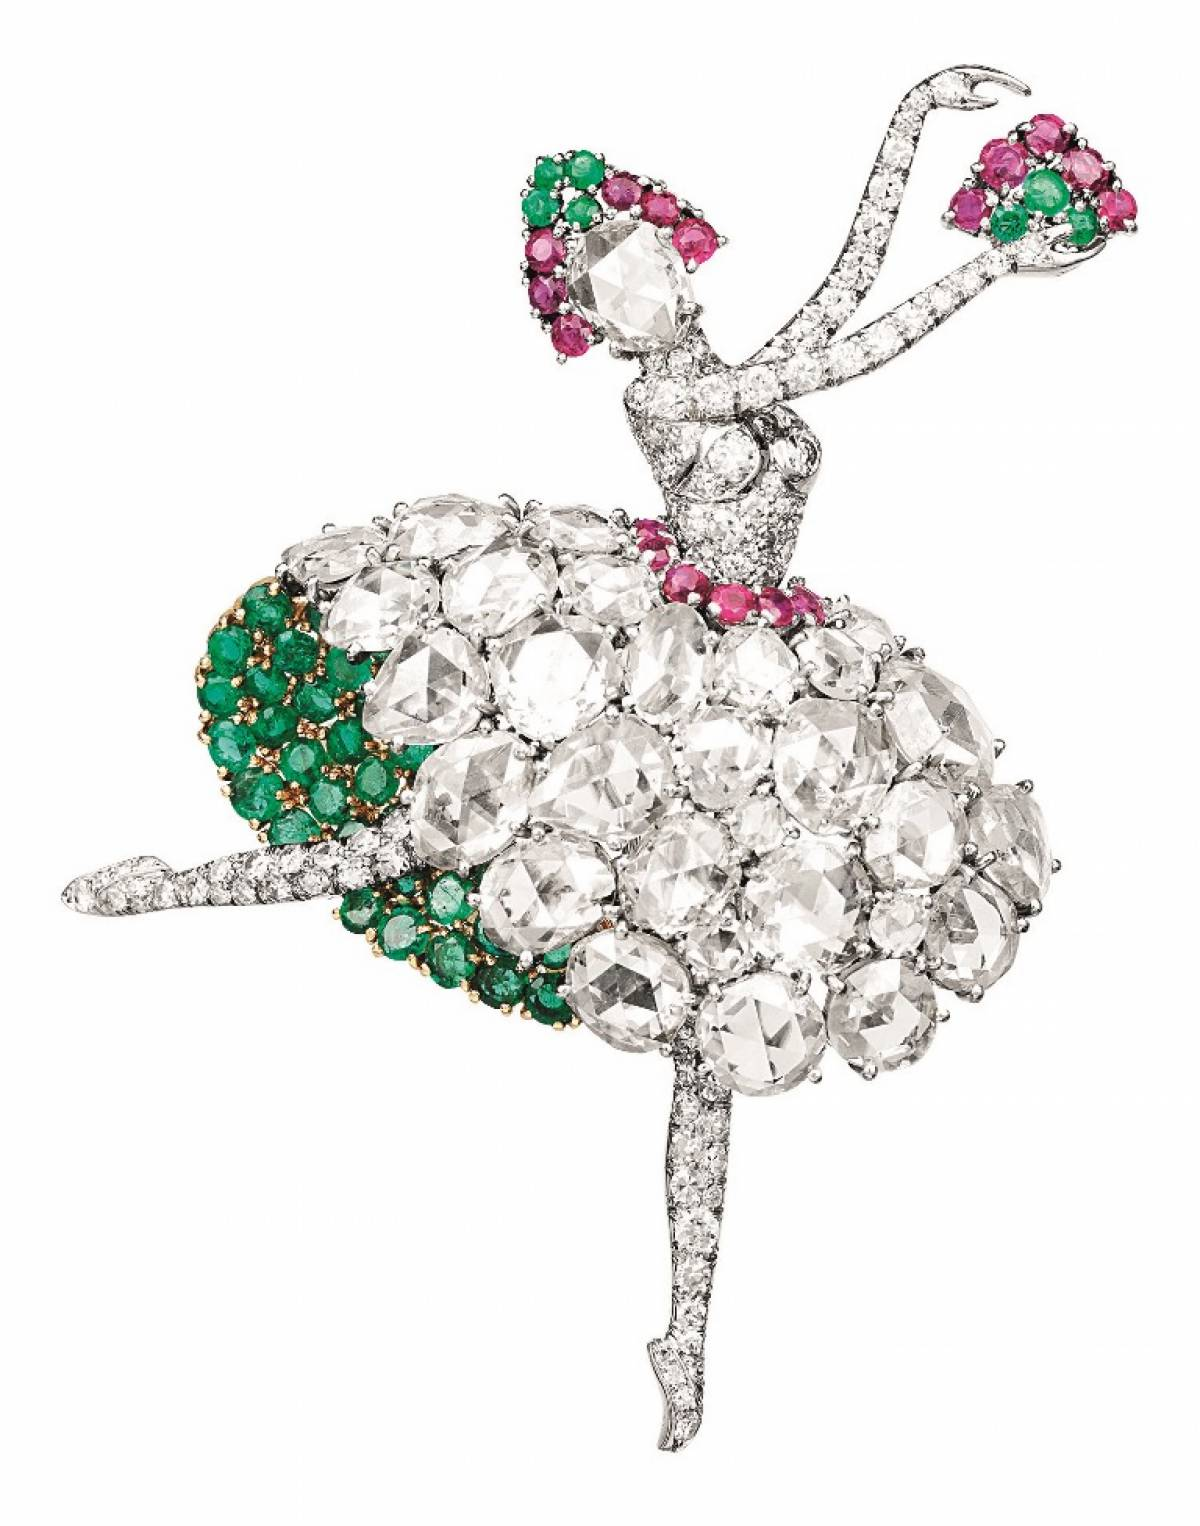 Van Cleef & Arpels: The Art and Science of Gems